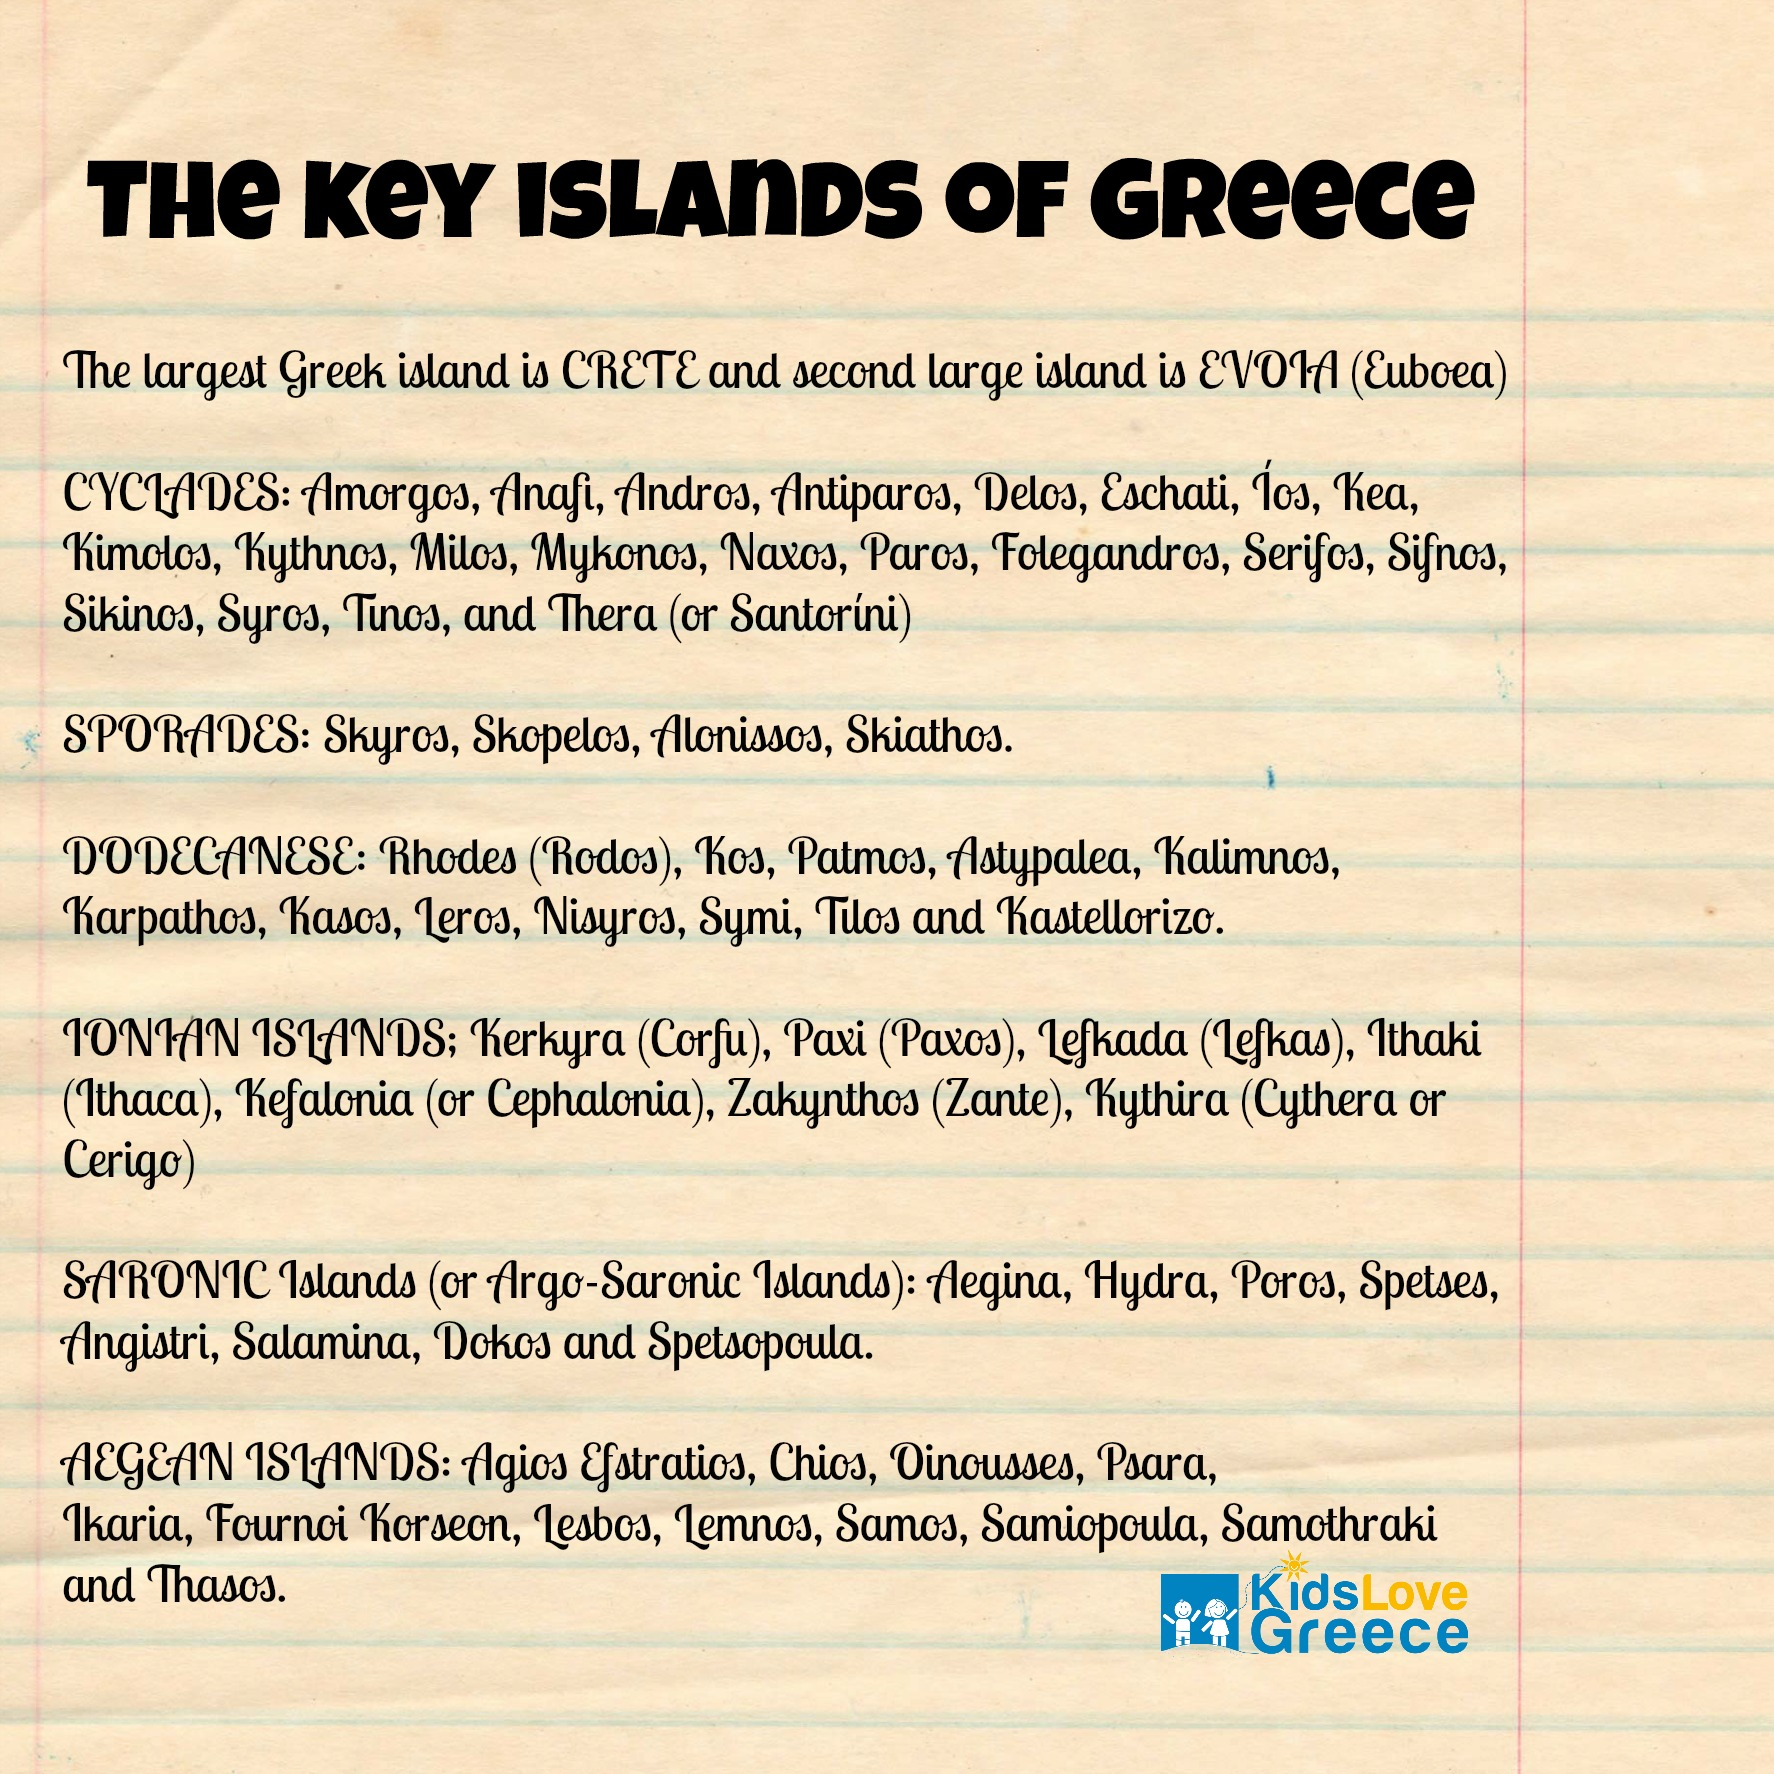 Key islands of Greece